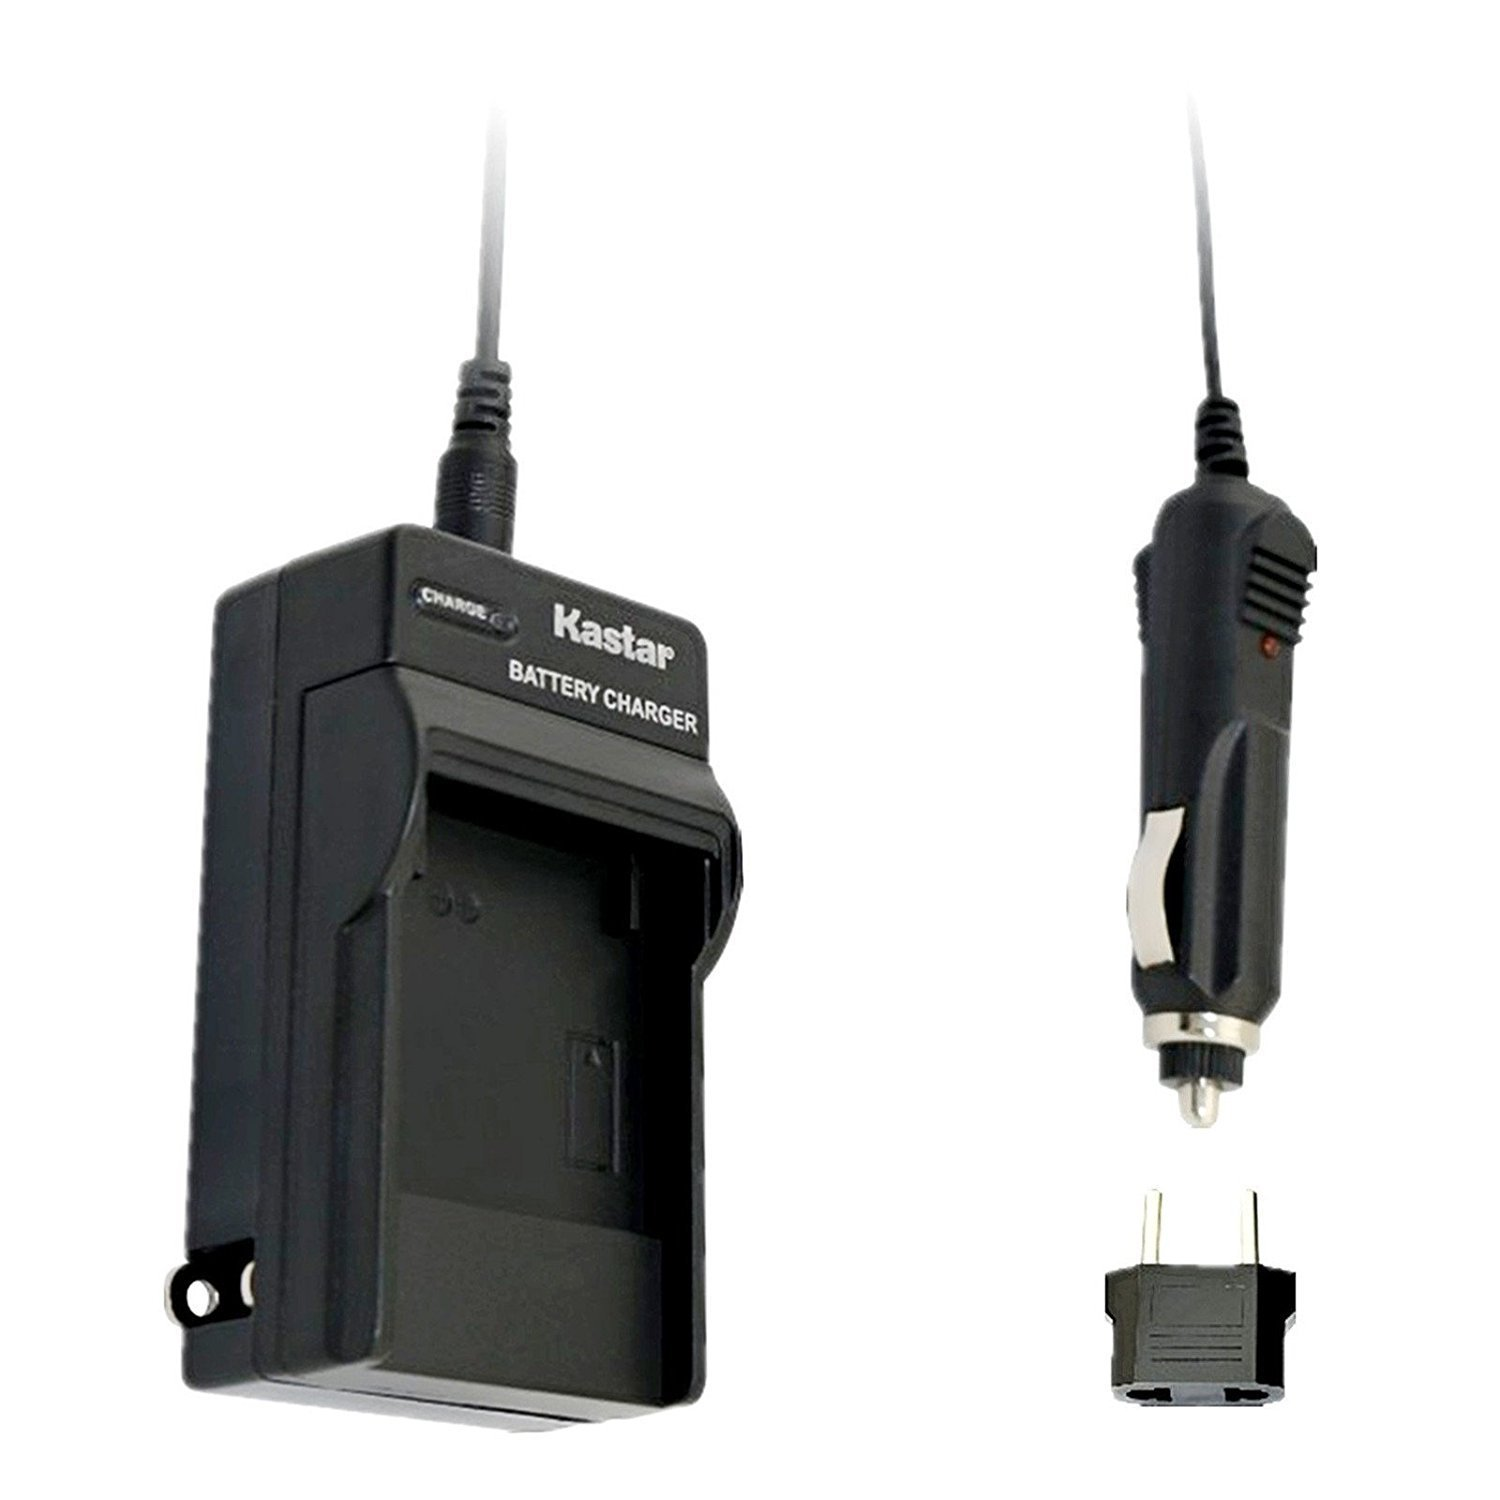 Kastar Travel Charger Kit for NP-BN1, BC-CSN work with Sony Cyber-shot